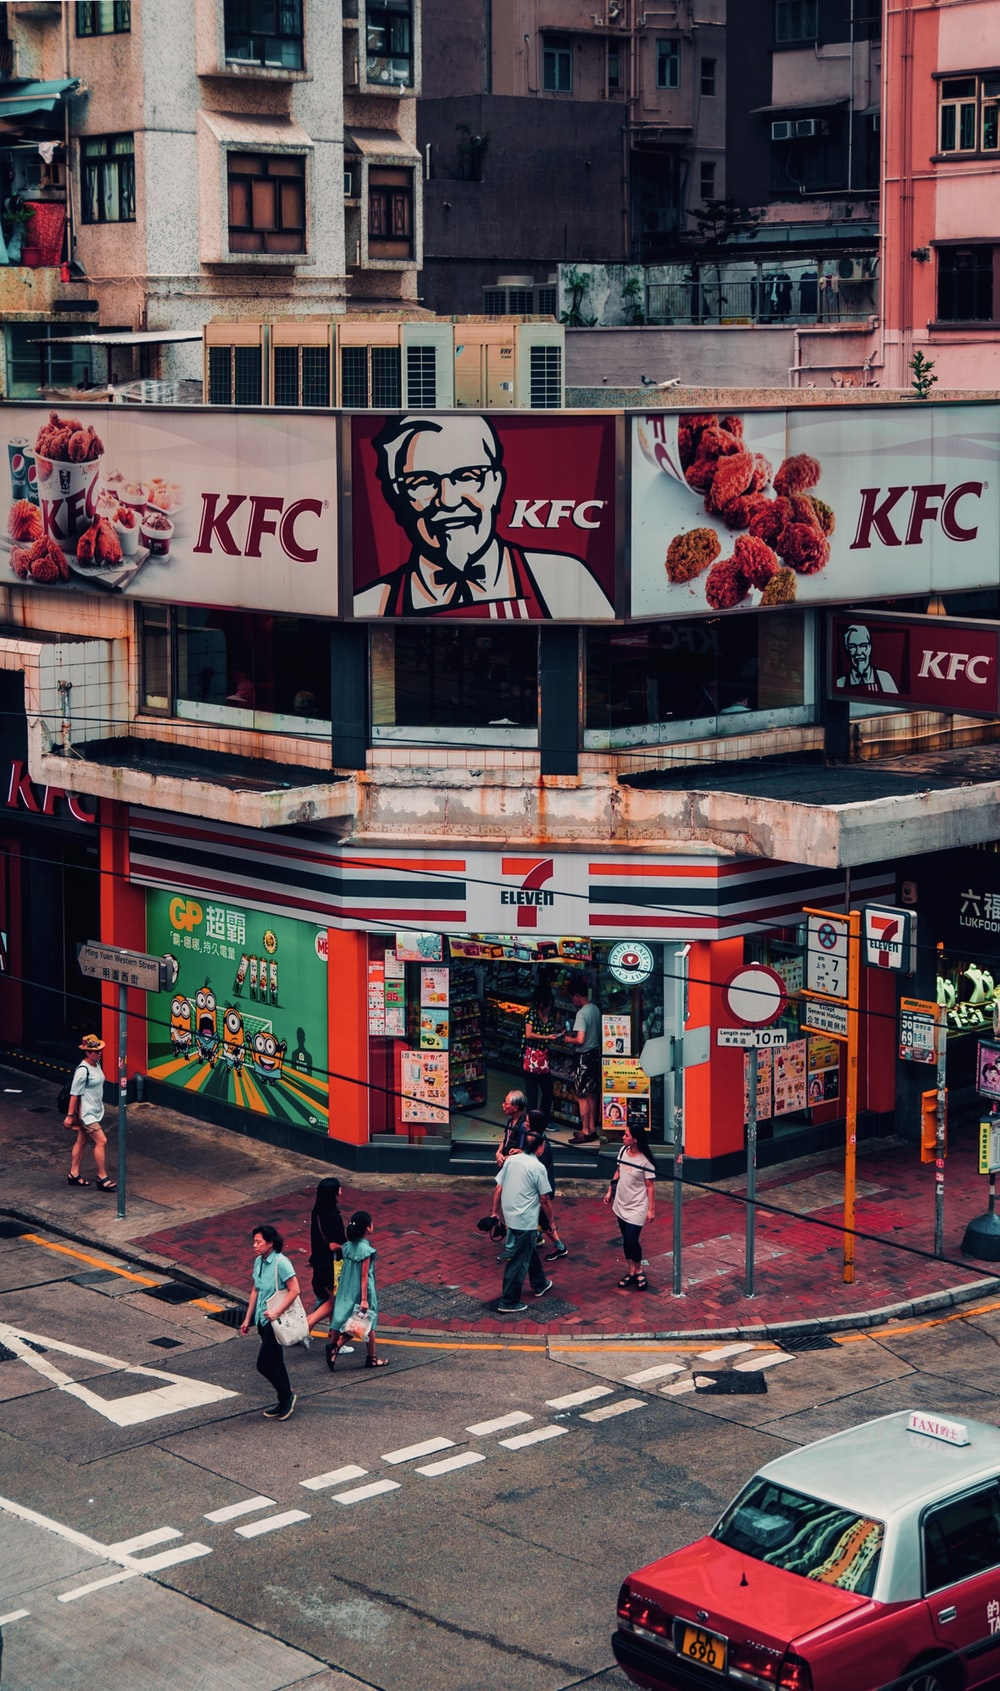 white and red KFC building